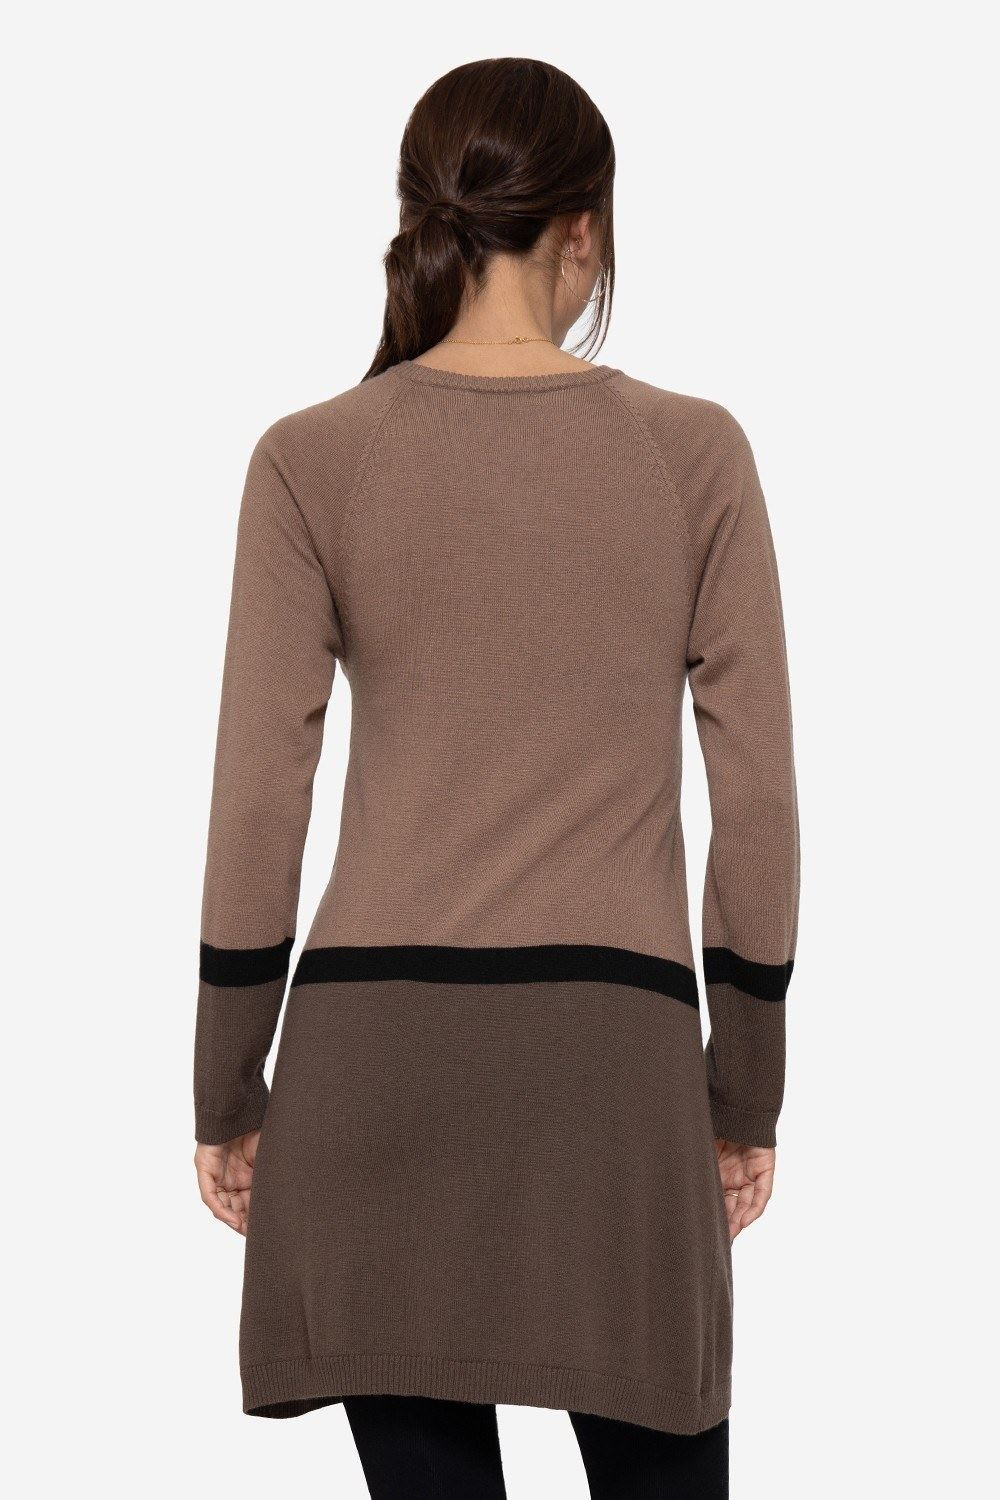 Brown striped nursing dress with dark brown skirt and buttons, seen from behind